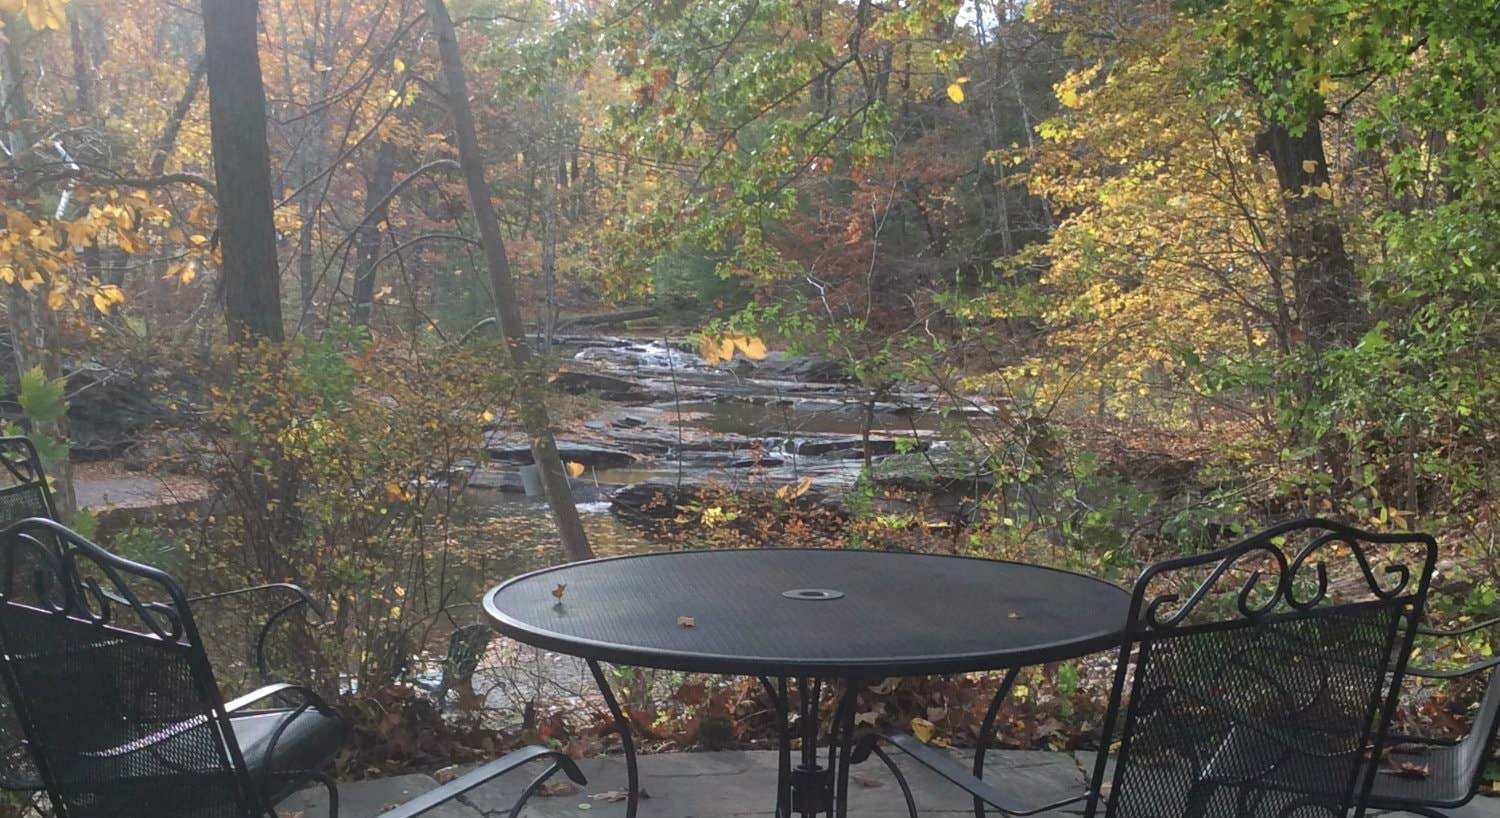 Black round metal table and chairs on a patio overlooking a stream and the woods with trees changing colors